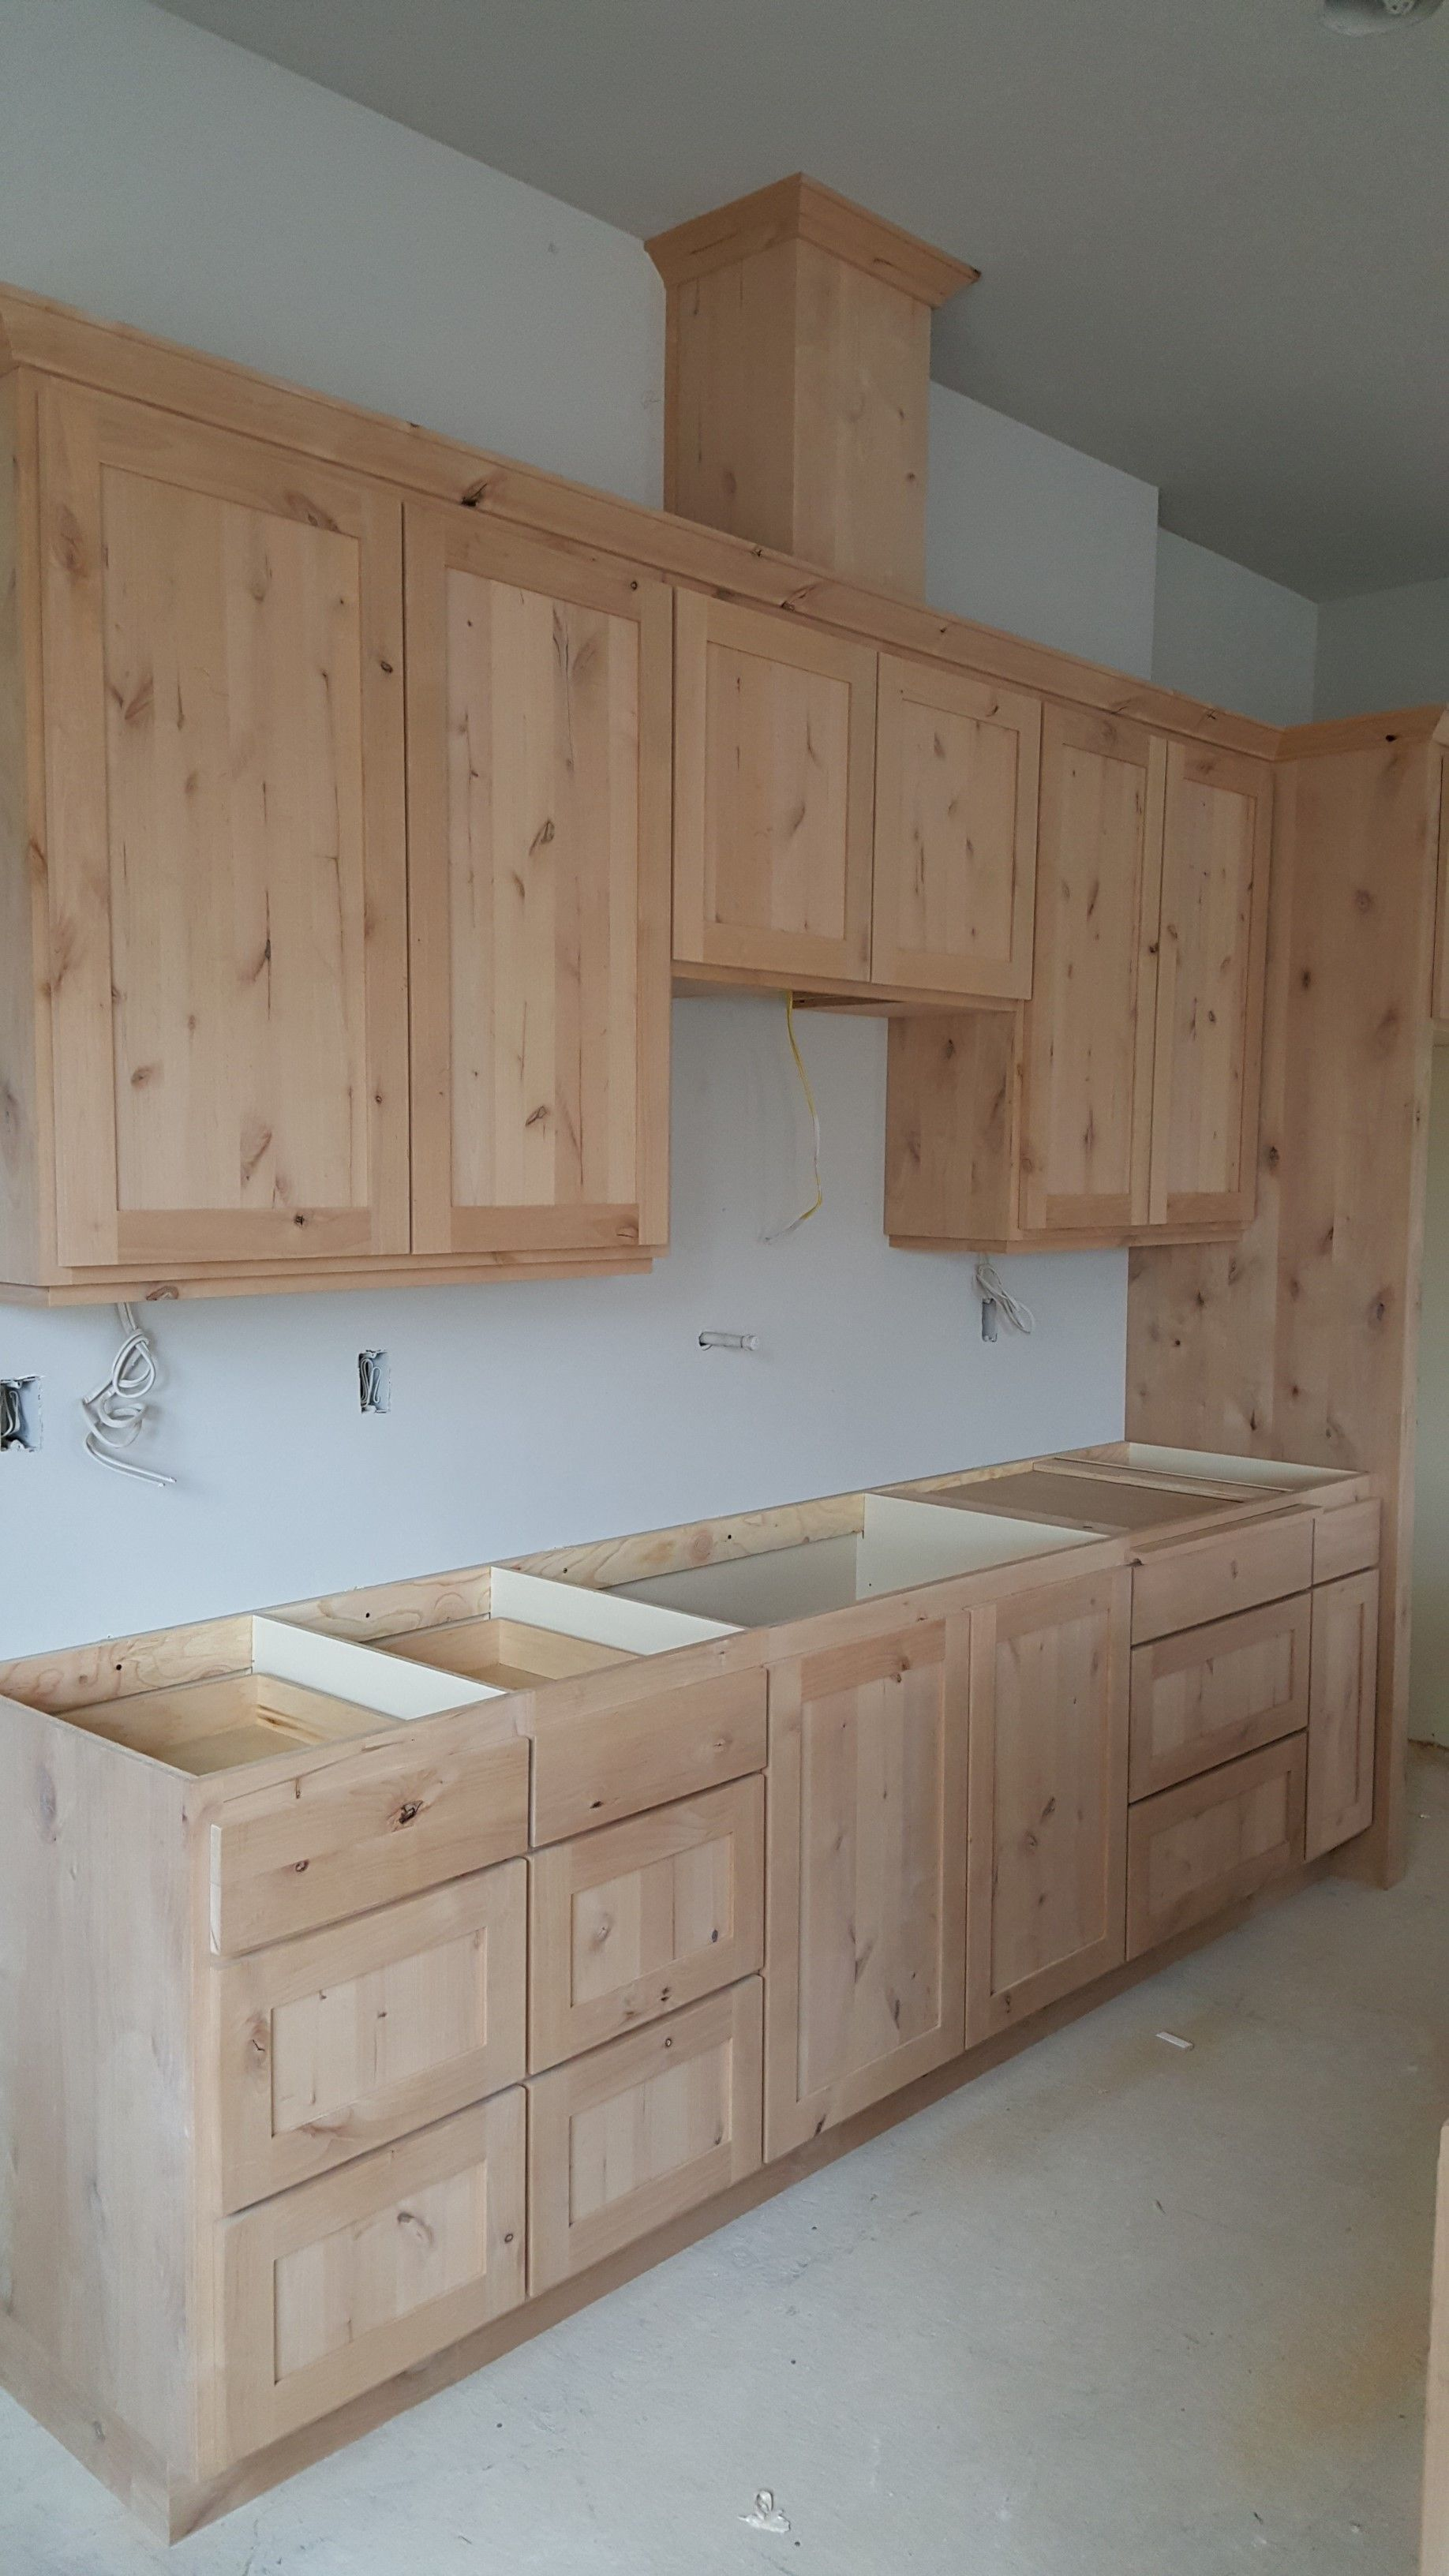 Kitchen Range Run Cabinets Were Built By Neville S Woodworking In Eagle Creek Oregon Kitchen Cabinet Styles Kitchen Cabinet Plans Cheap Kitchen Cabinets